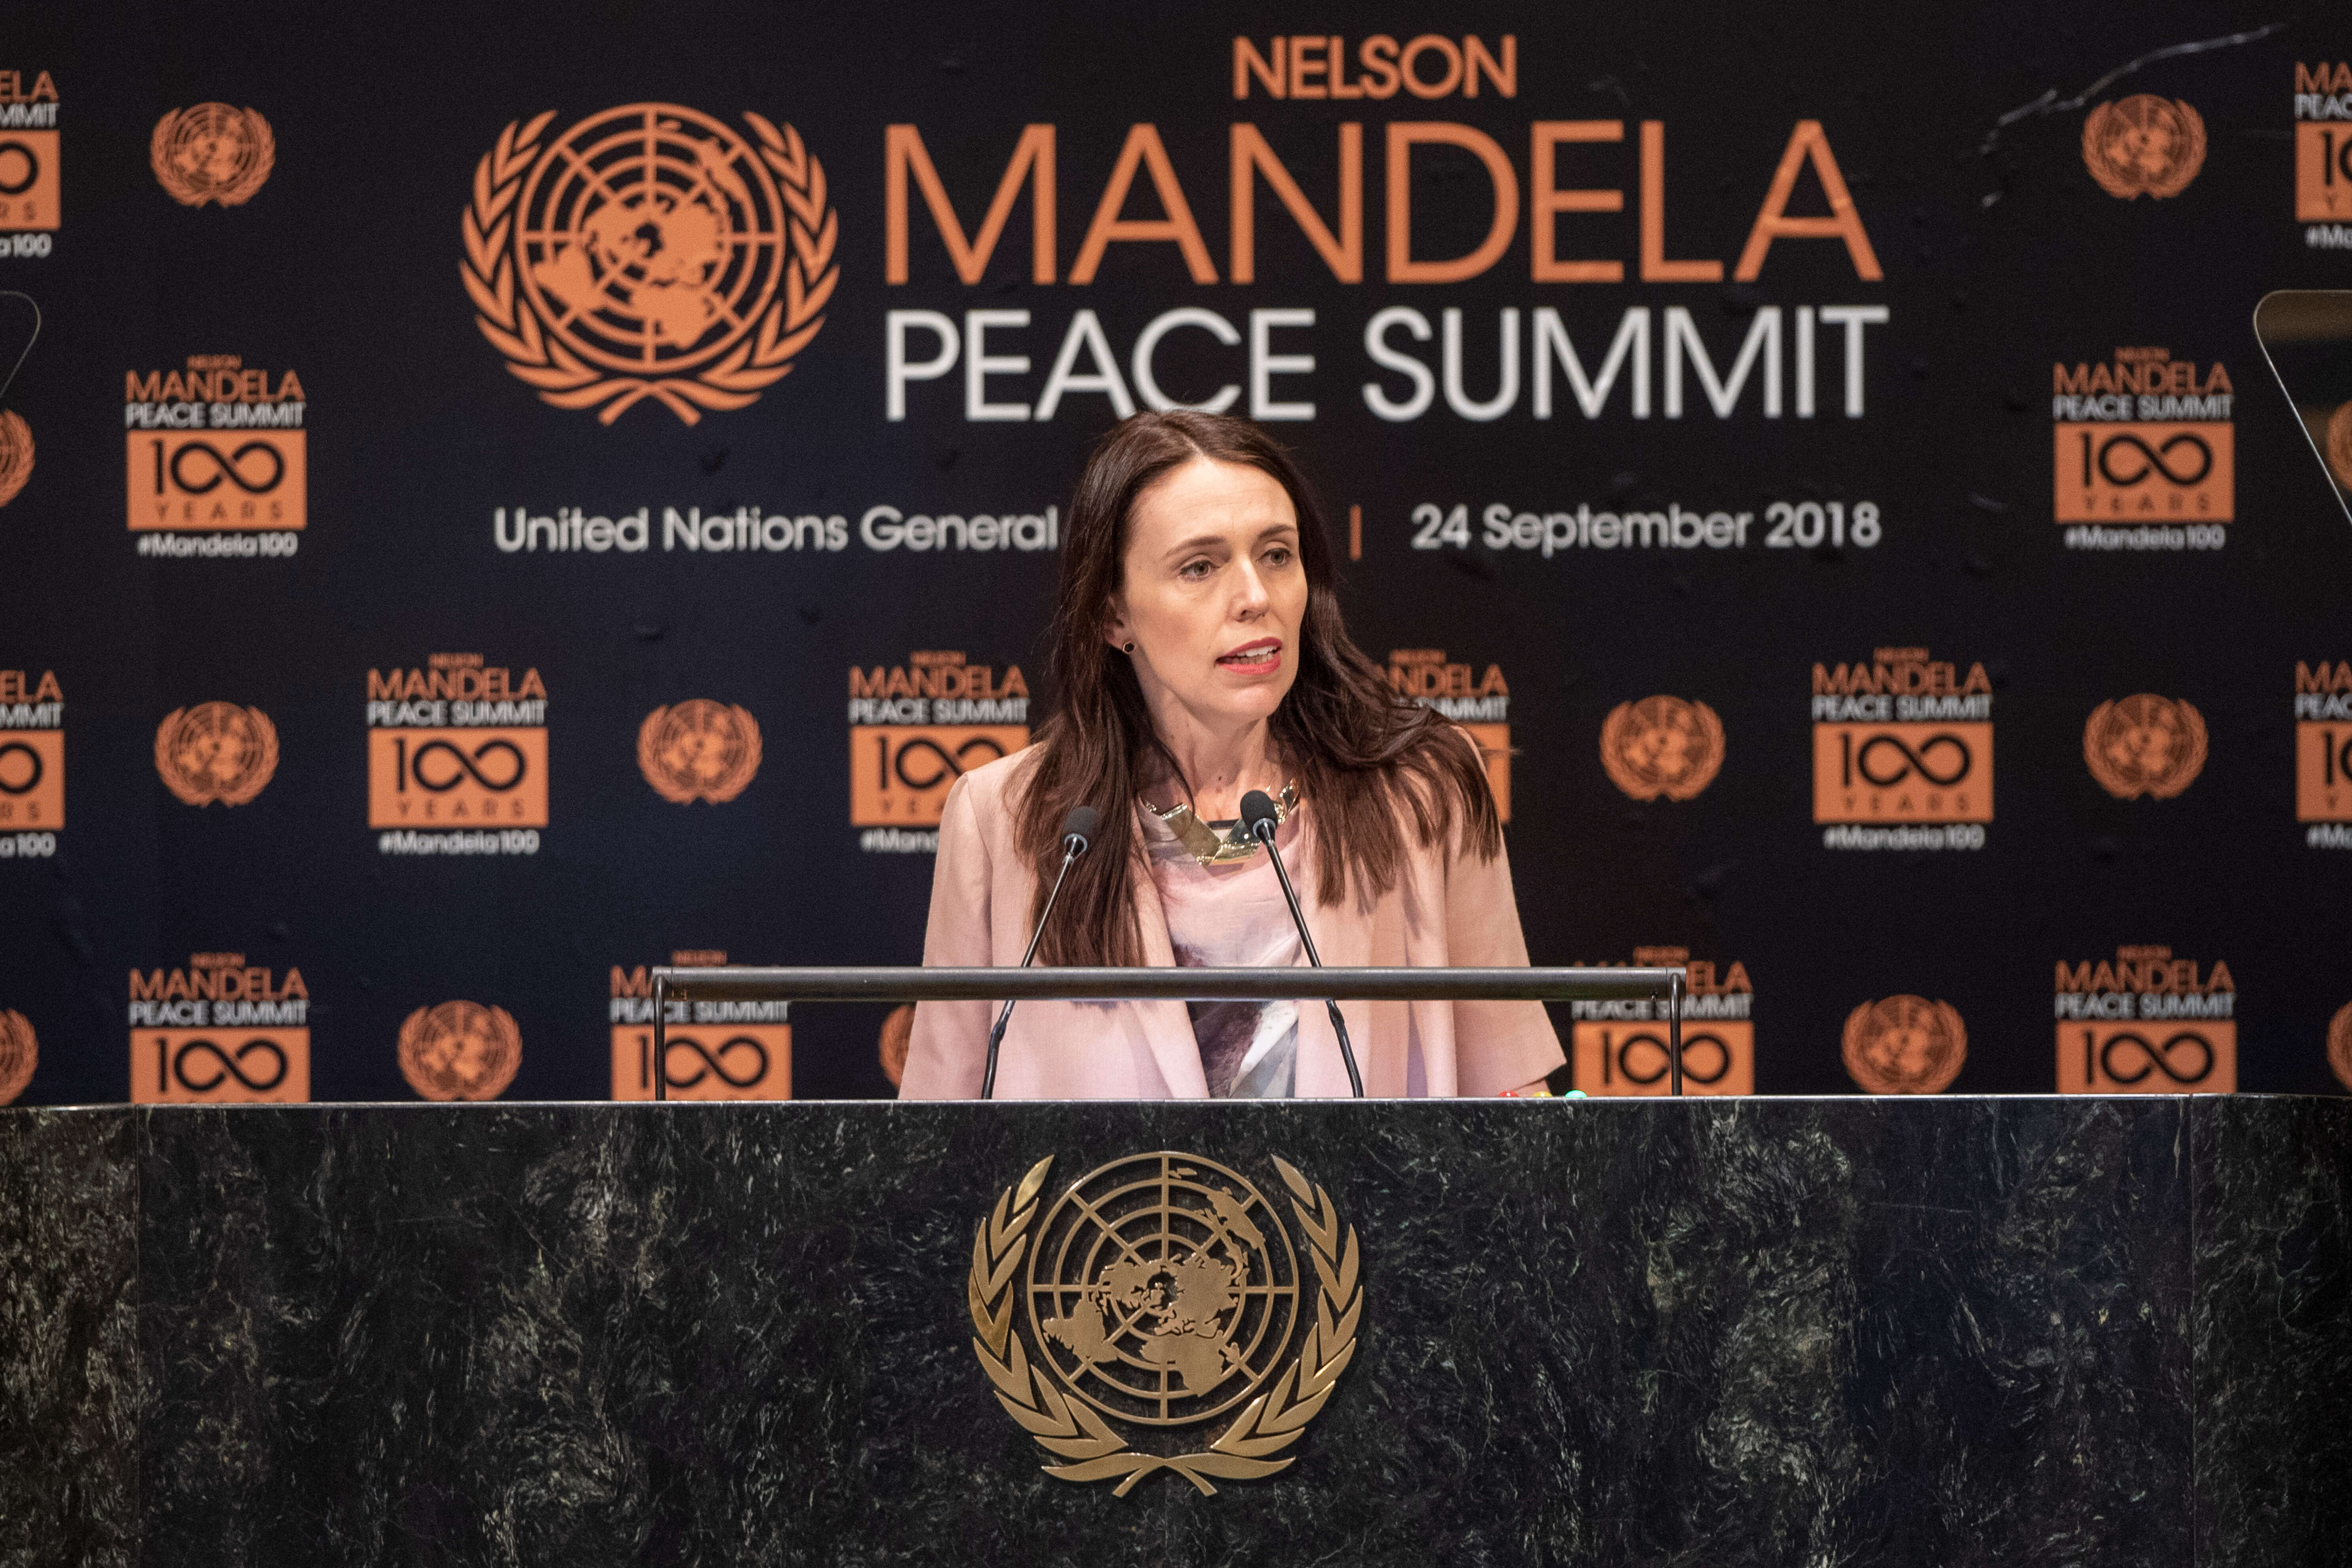 Jacinda Ardern, Prime Minister and Minister for Arts, Culture and Heritage, and National Security and Intelligence of New Zealand, makes remarks during the Nelson Mandela Peace Summit in September 2018. Source: UN Photo